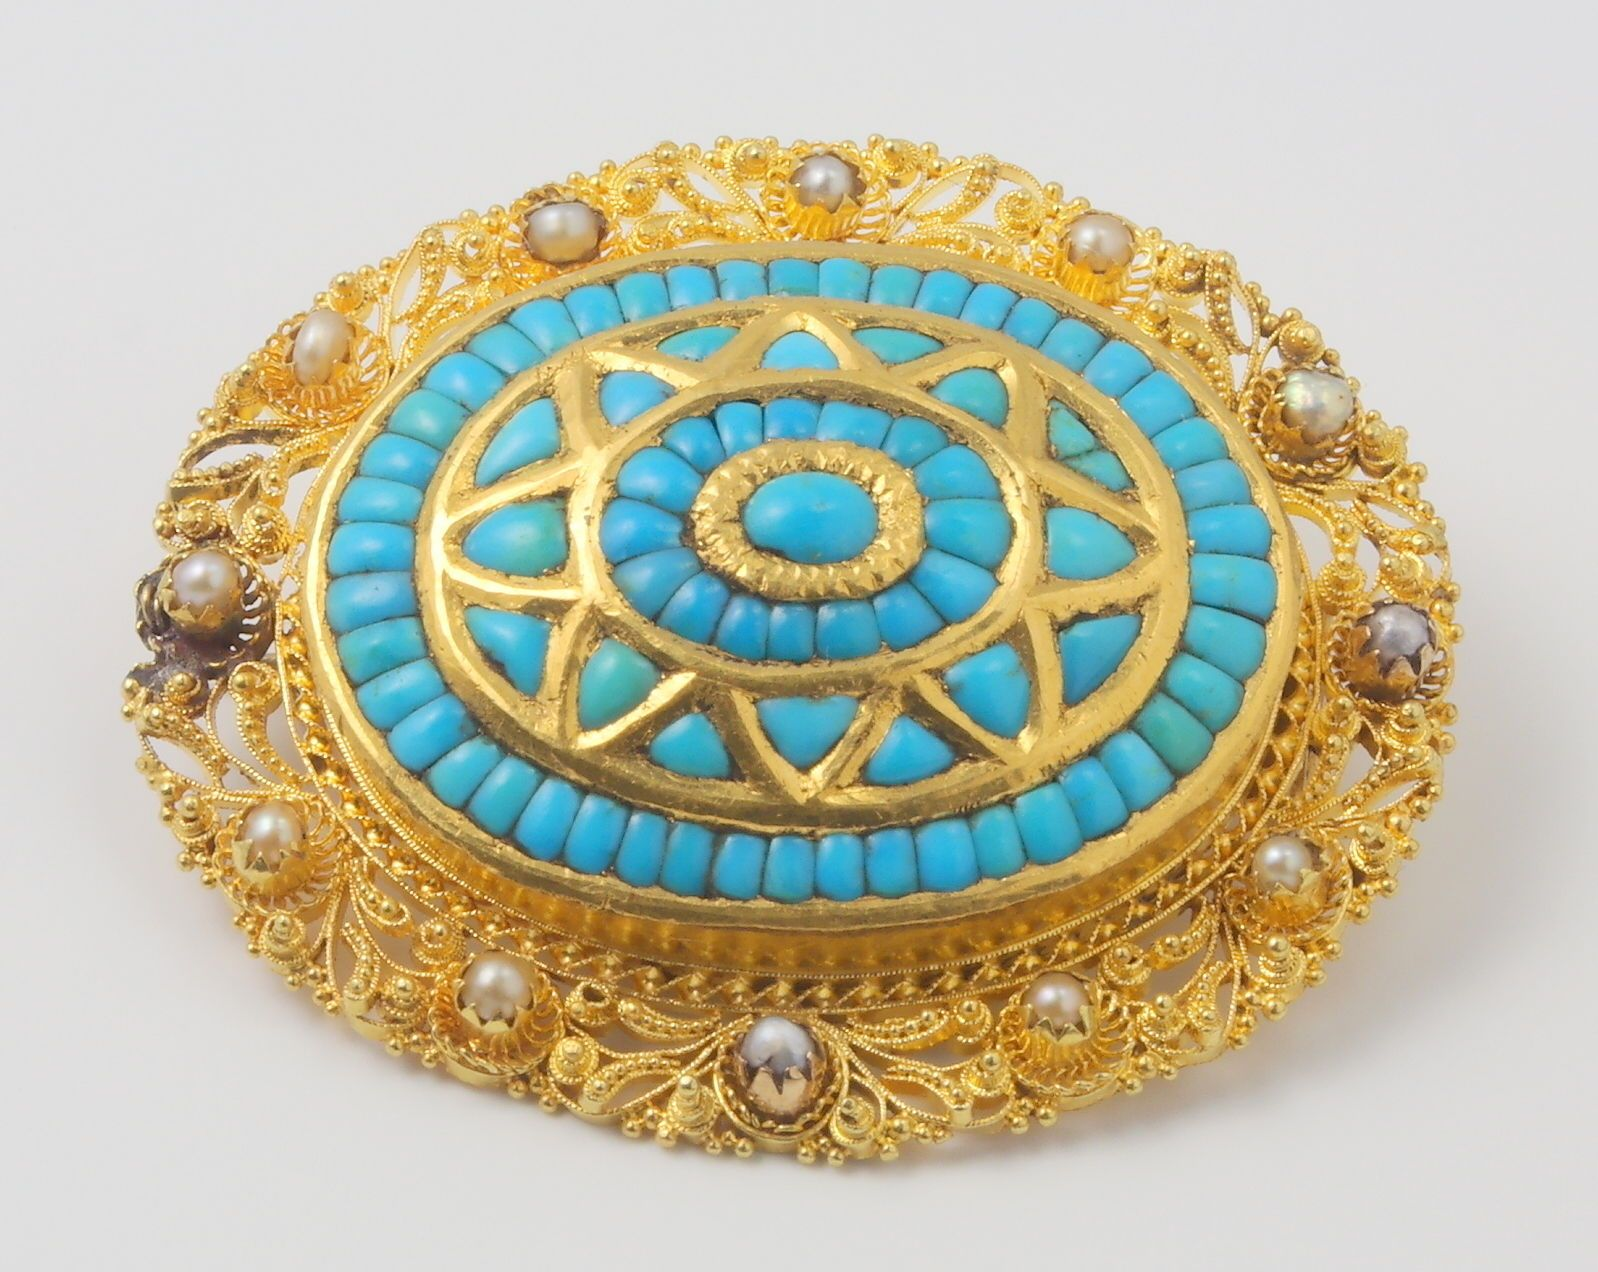 Heavy Antique Victorian 18ct Yellow Gold Turquoise & Pearl Brooch